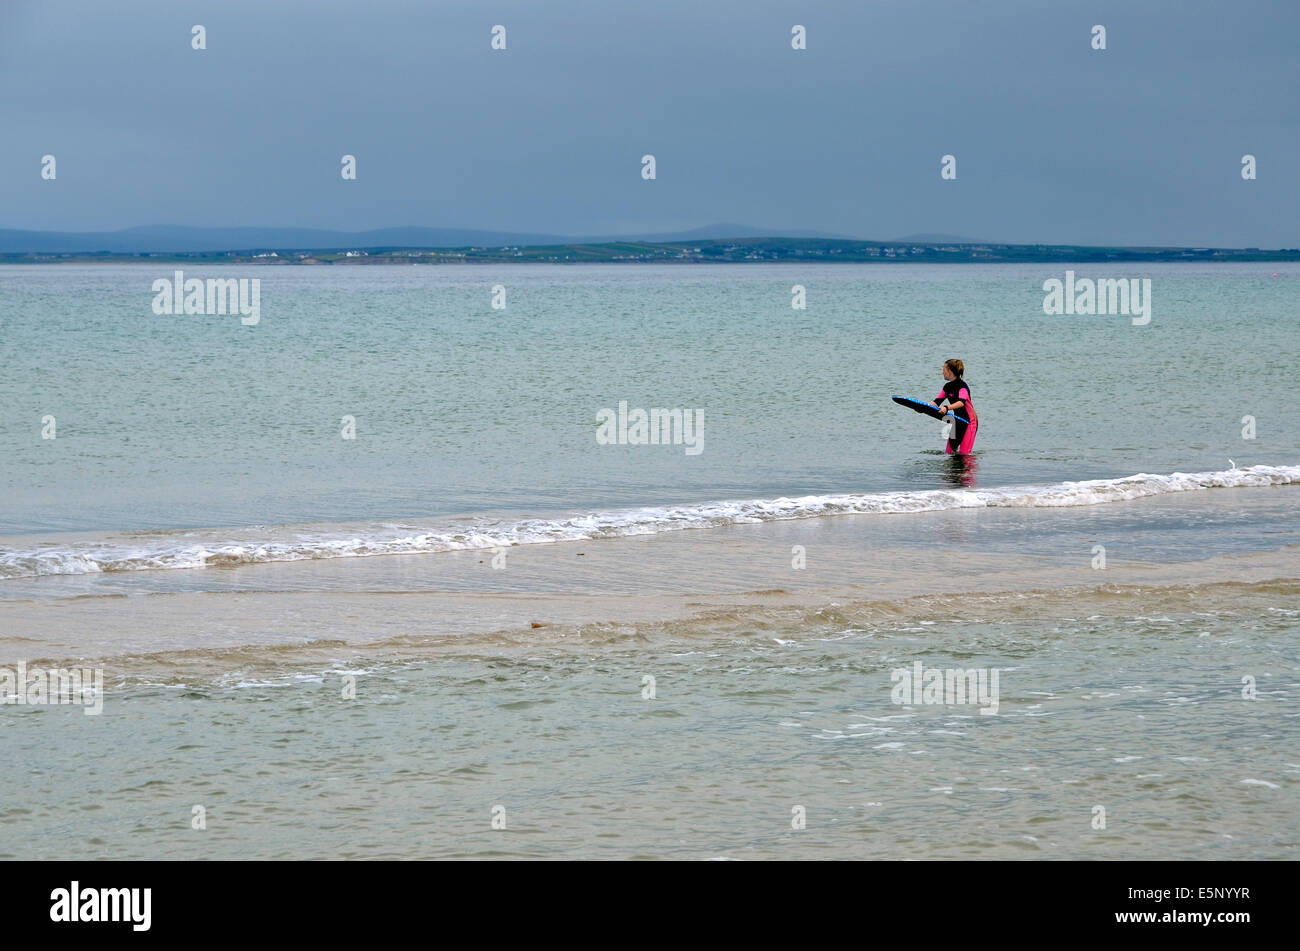 A surfer waits in vain for a wave on a flat calm sea, Silver Strand, Achill Island, County May, Ireland. - Stock Image